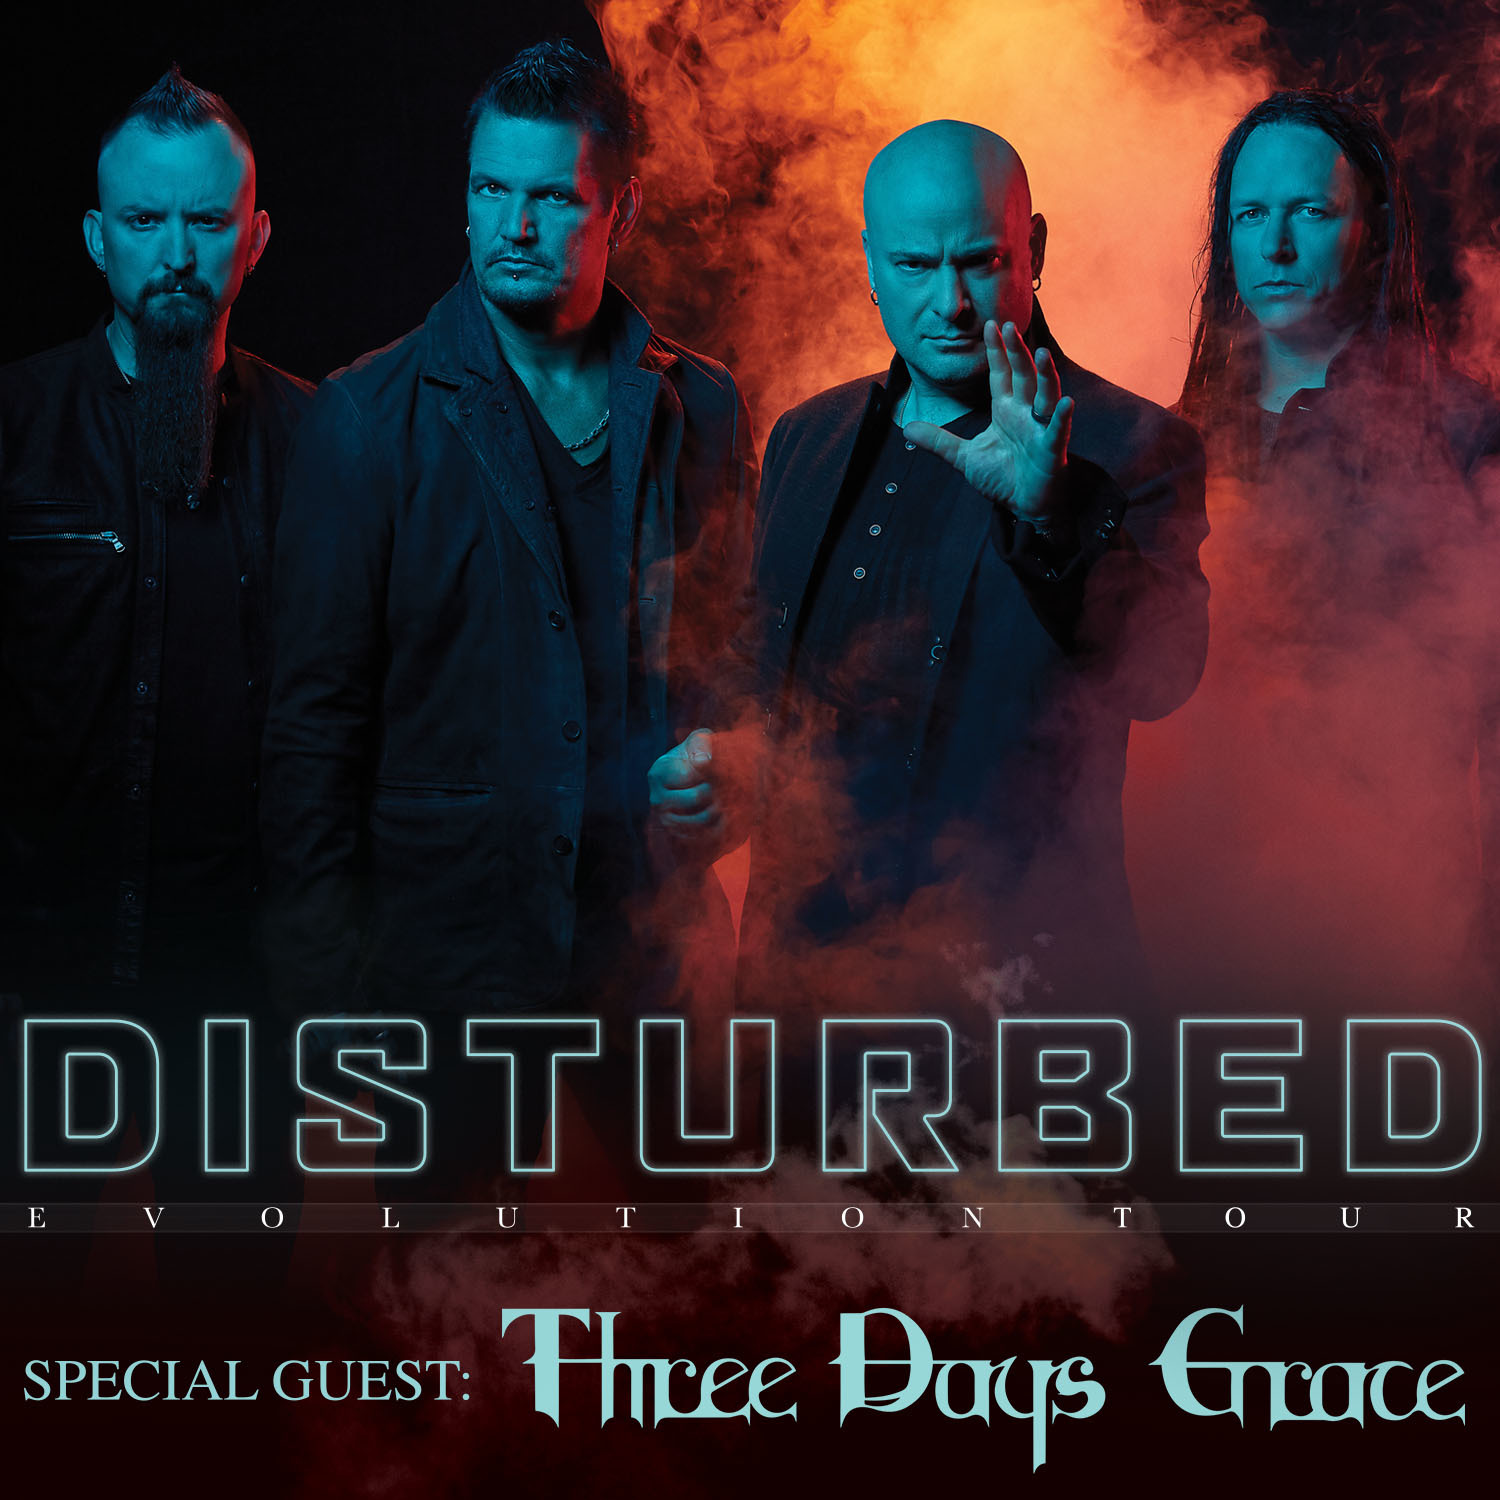 https://threedaysgrace.com/2018/10/18/3dg-winter-tour-with-disturbed-presale-password/